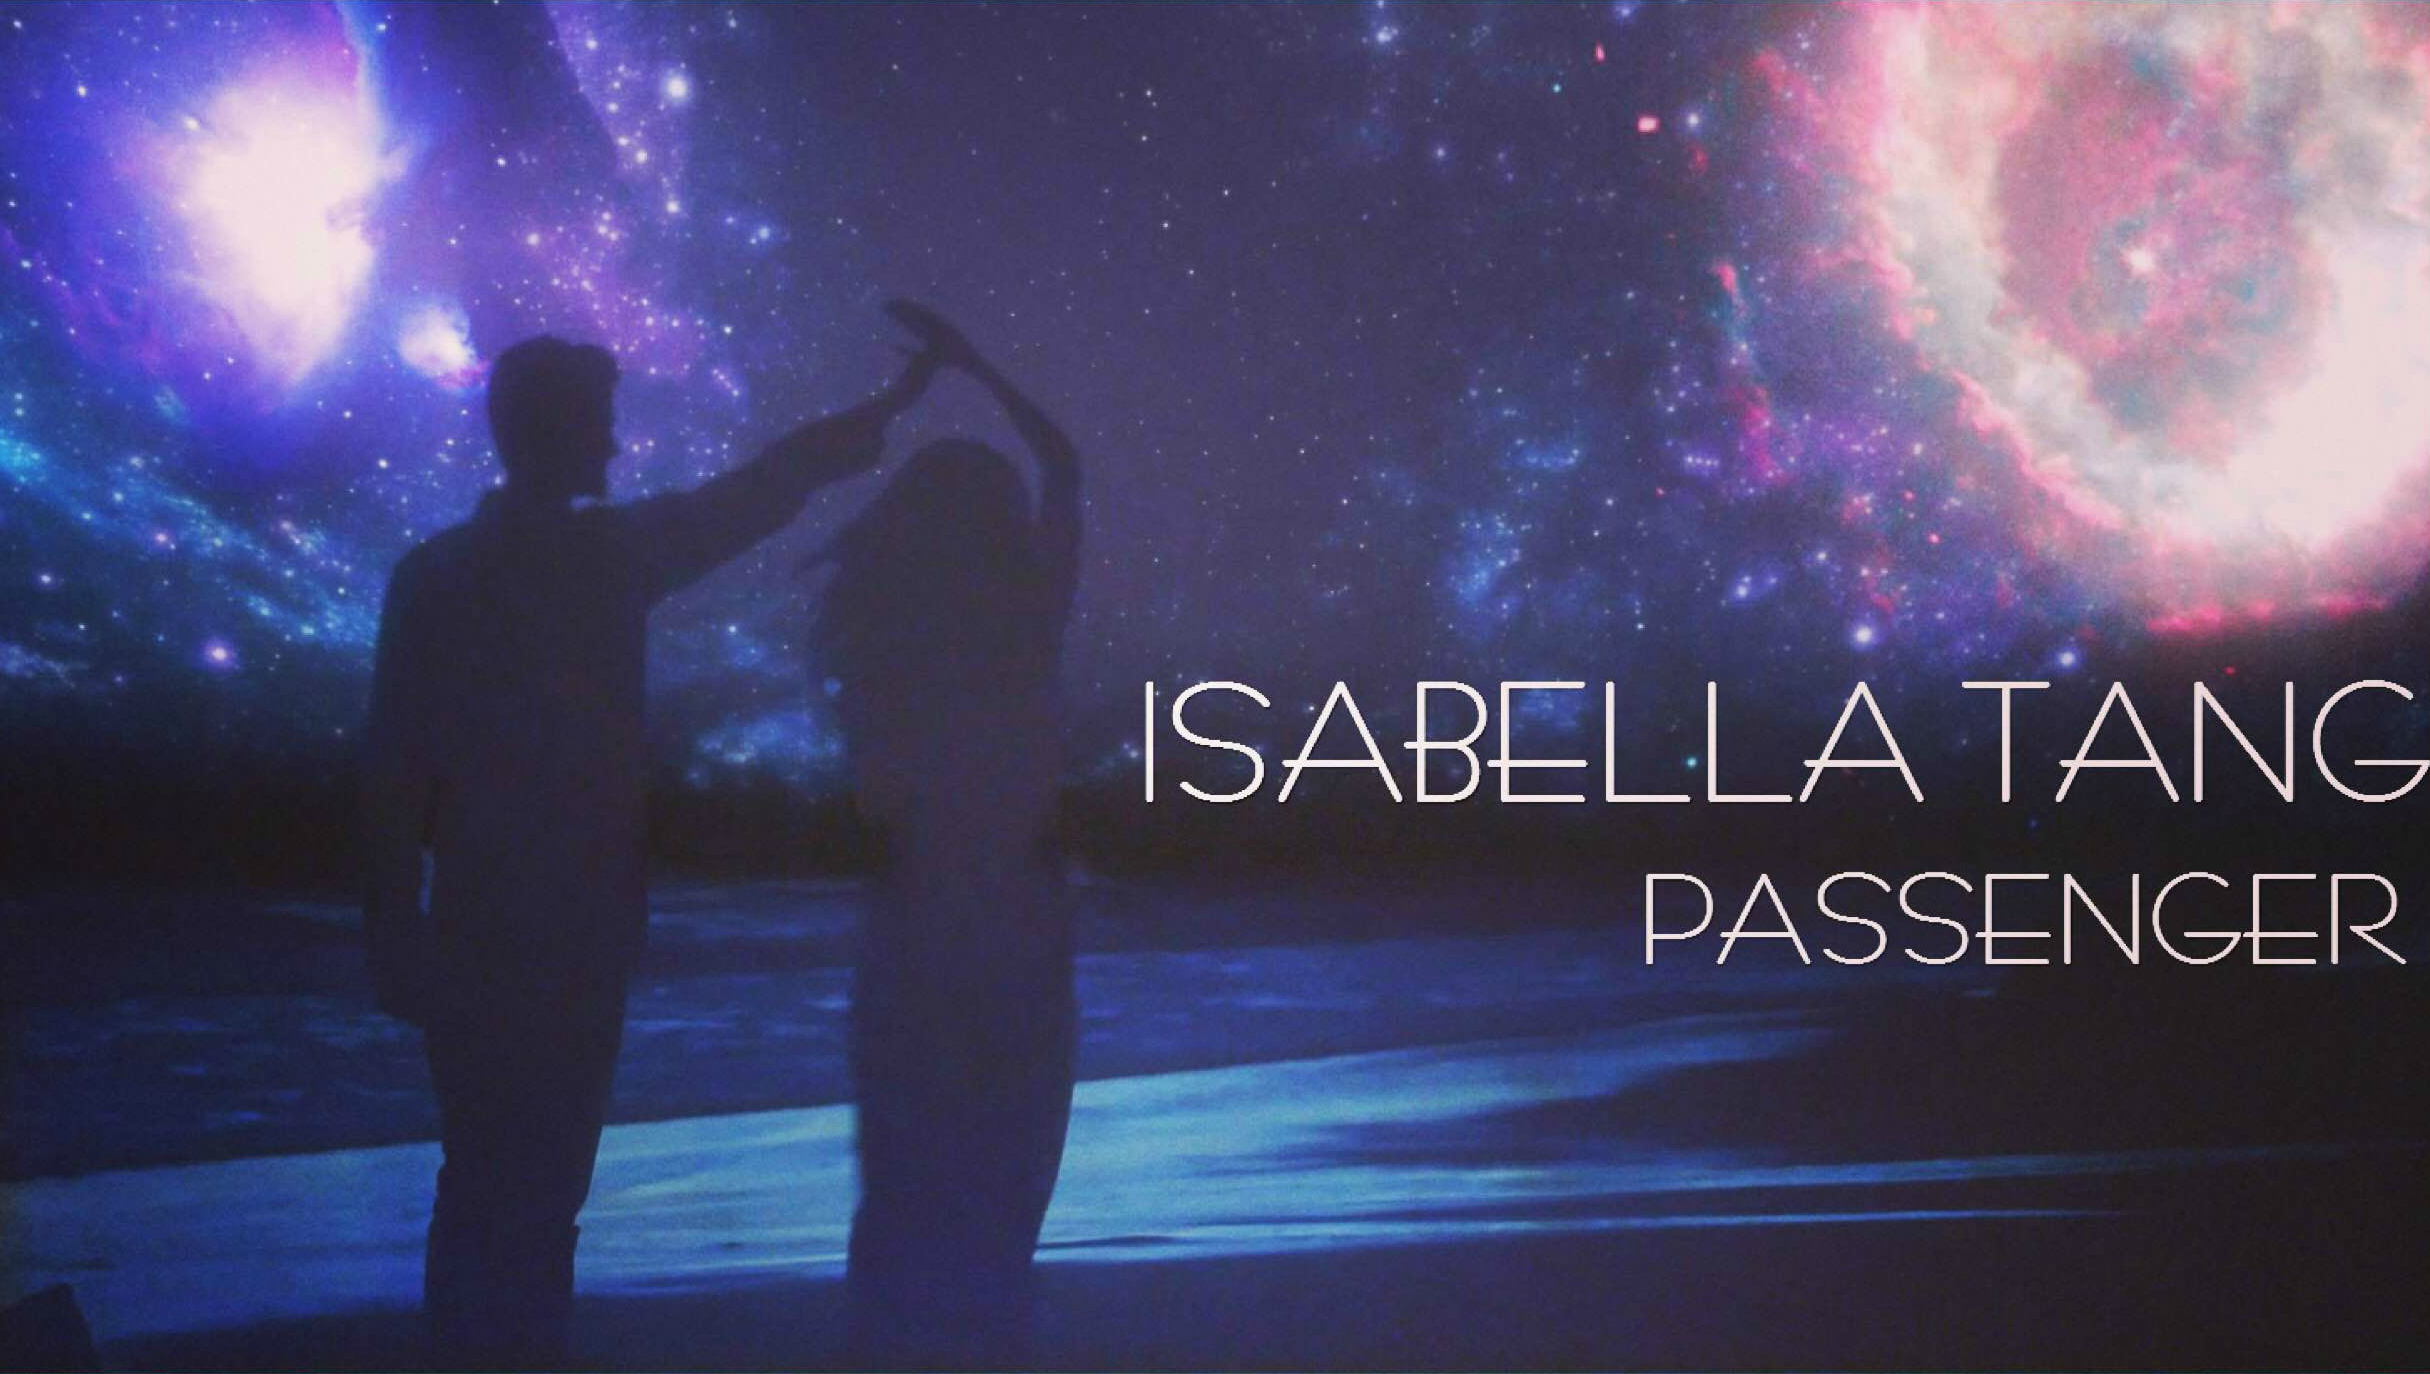 Isabella Tang_Passenger Music Video_Galaxy_Poster.png